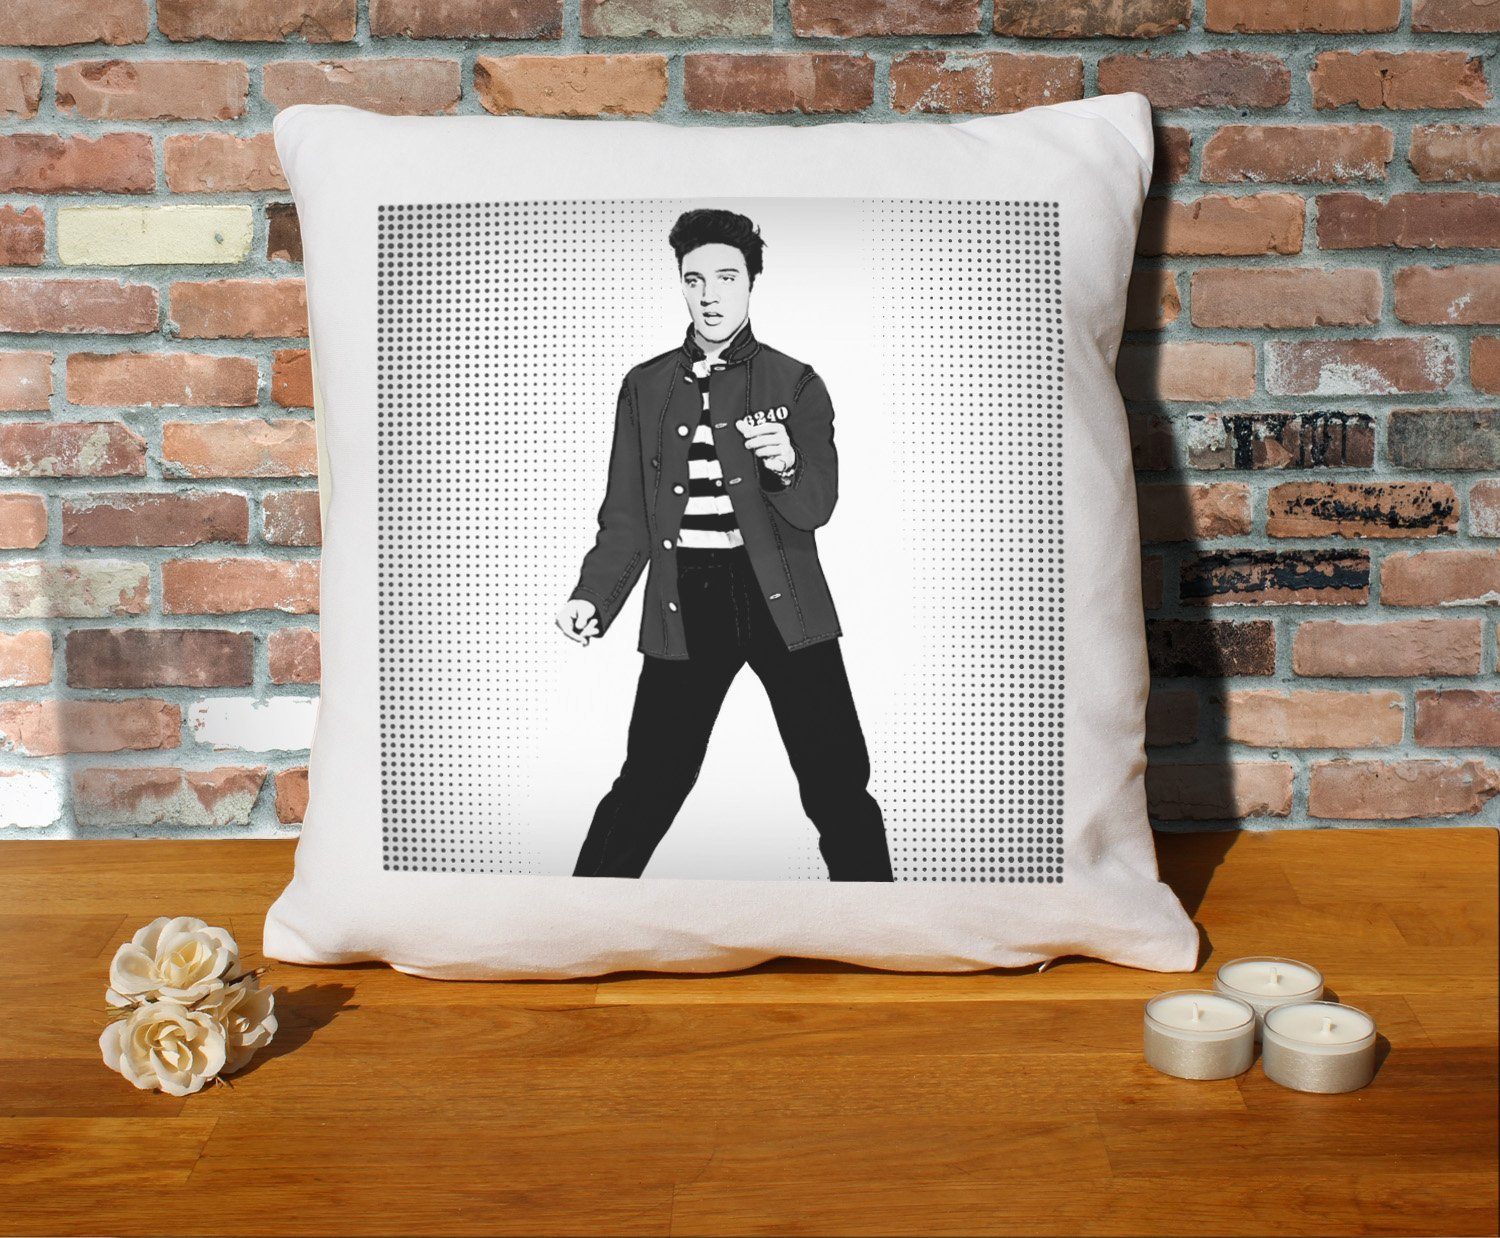 Elvis Presley Cushion Pillow - Pop Art - 100% Cotton - Available with or without filling pad - 40x40cm (Cover and Cushion filling pad) The Stocking Fillers